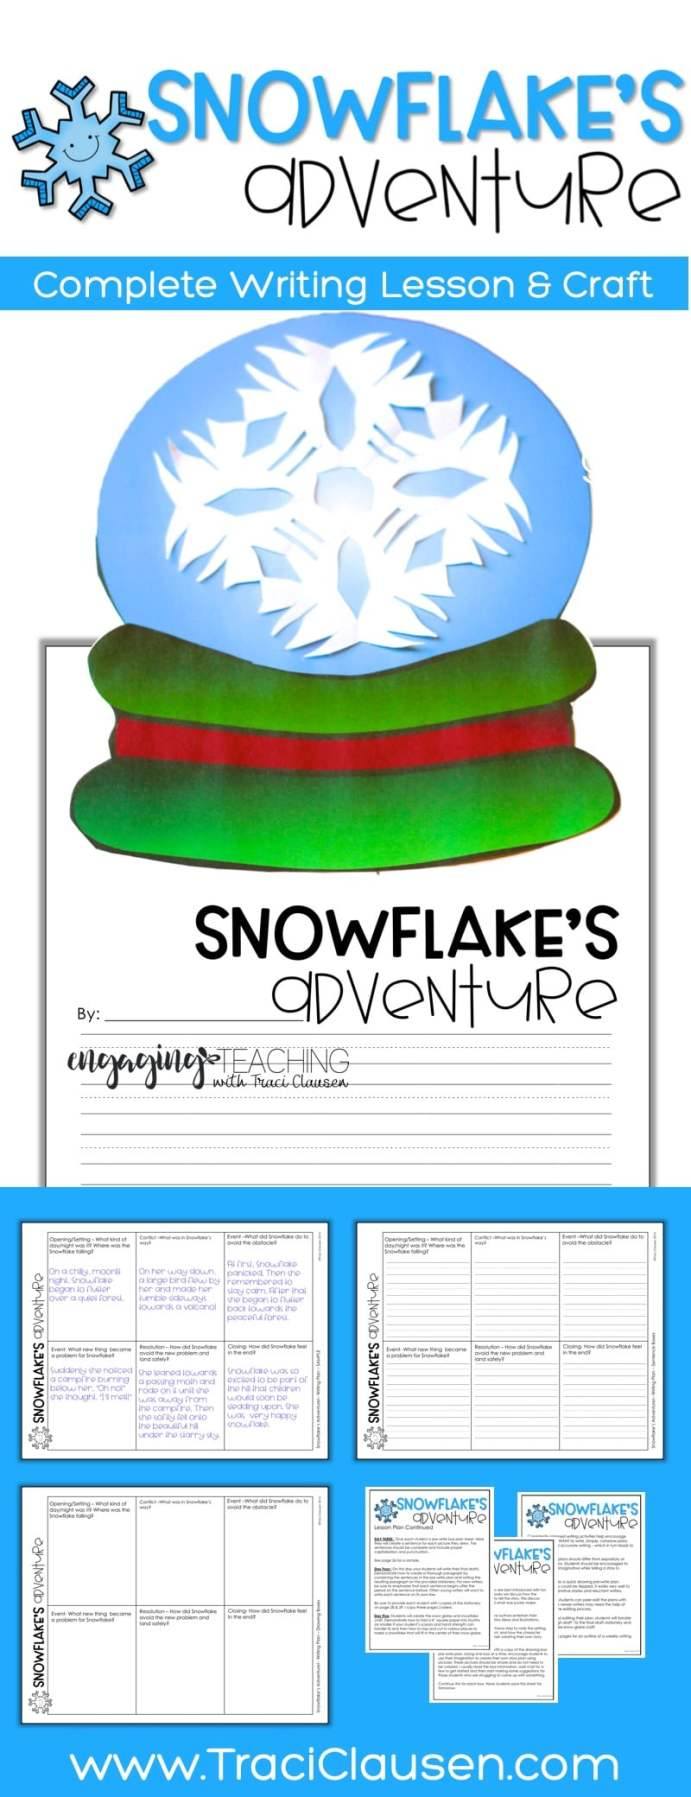 Snowflake's Adventure Writing Lesson